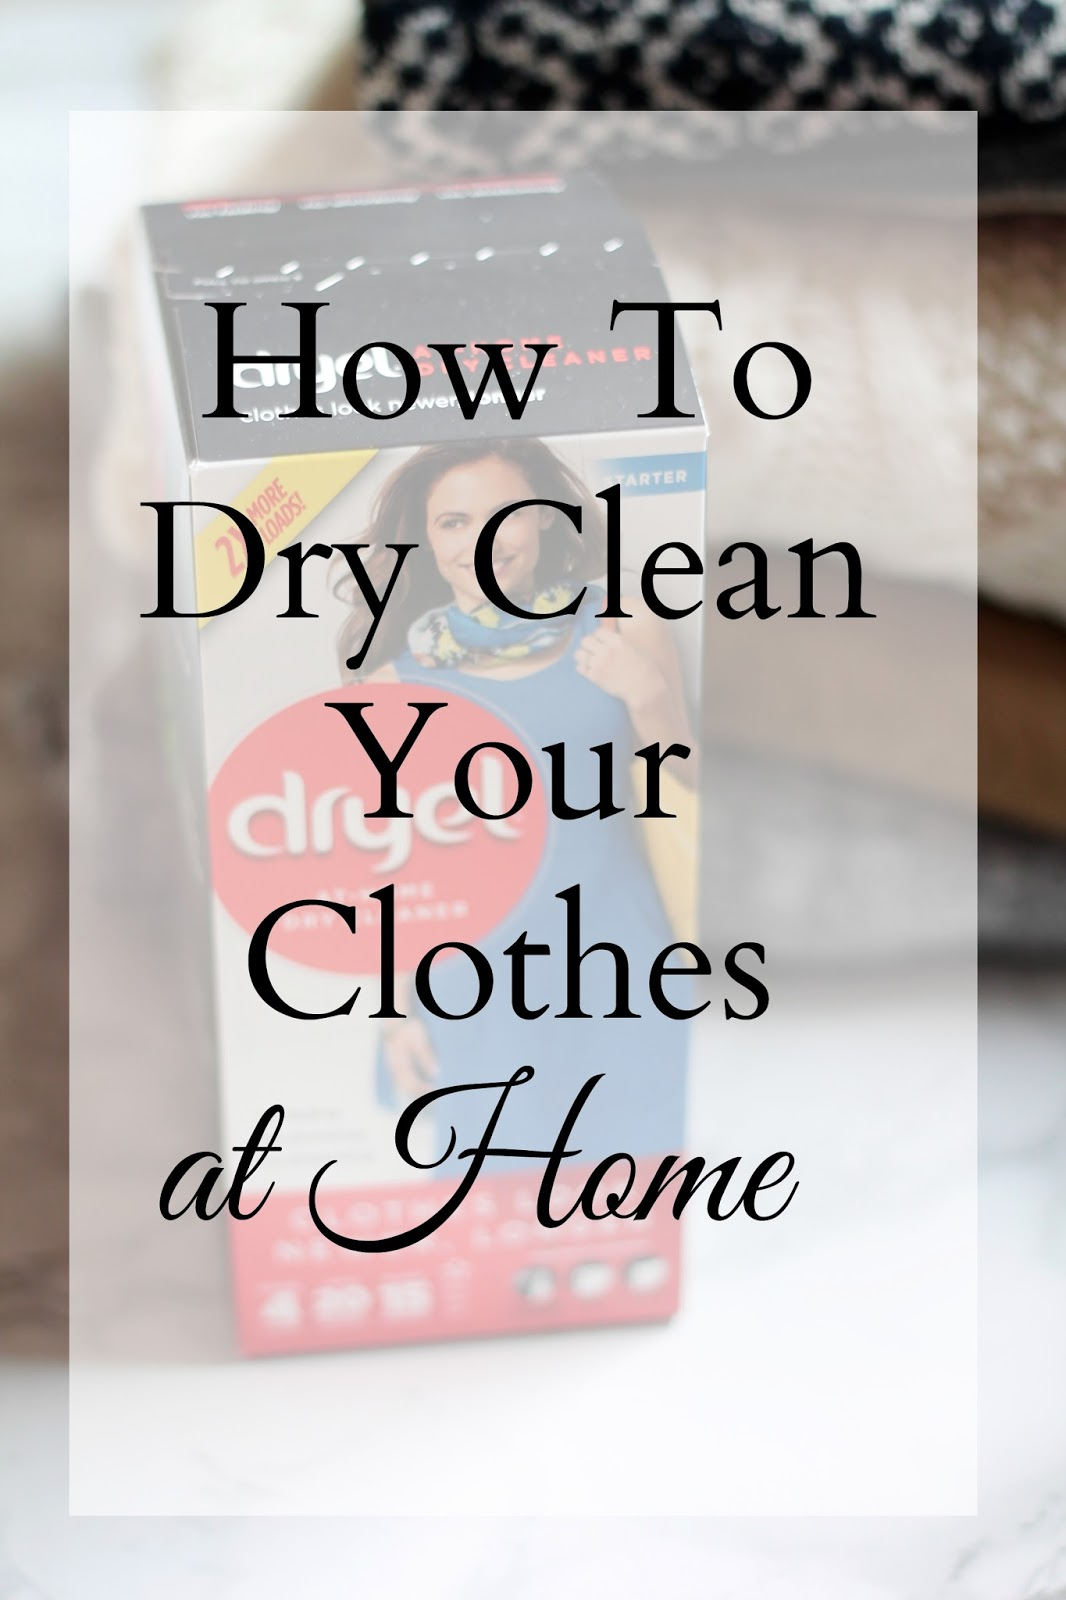 how to dry clean your clothes at home, dryel